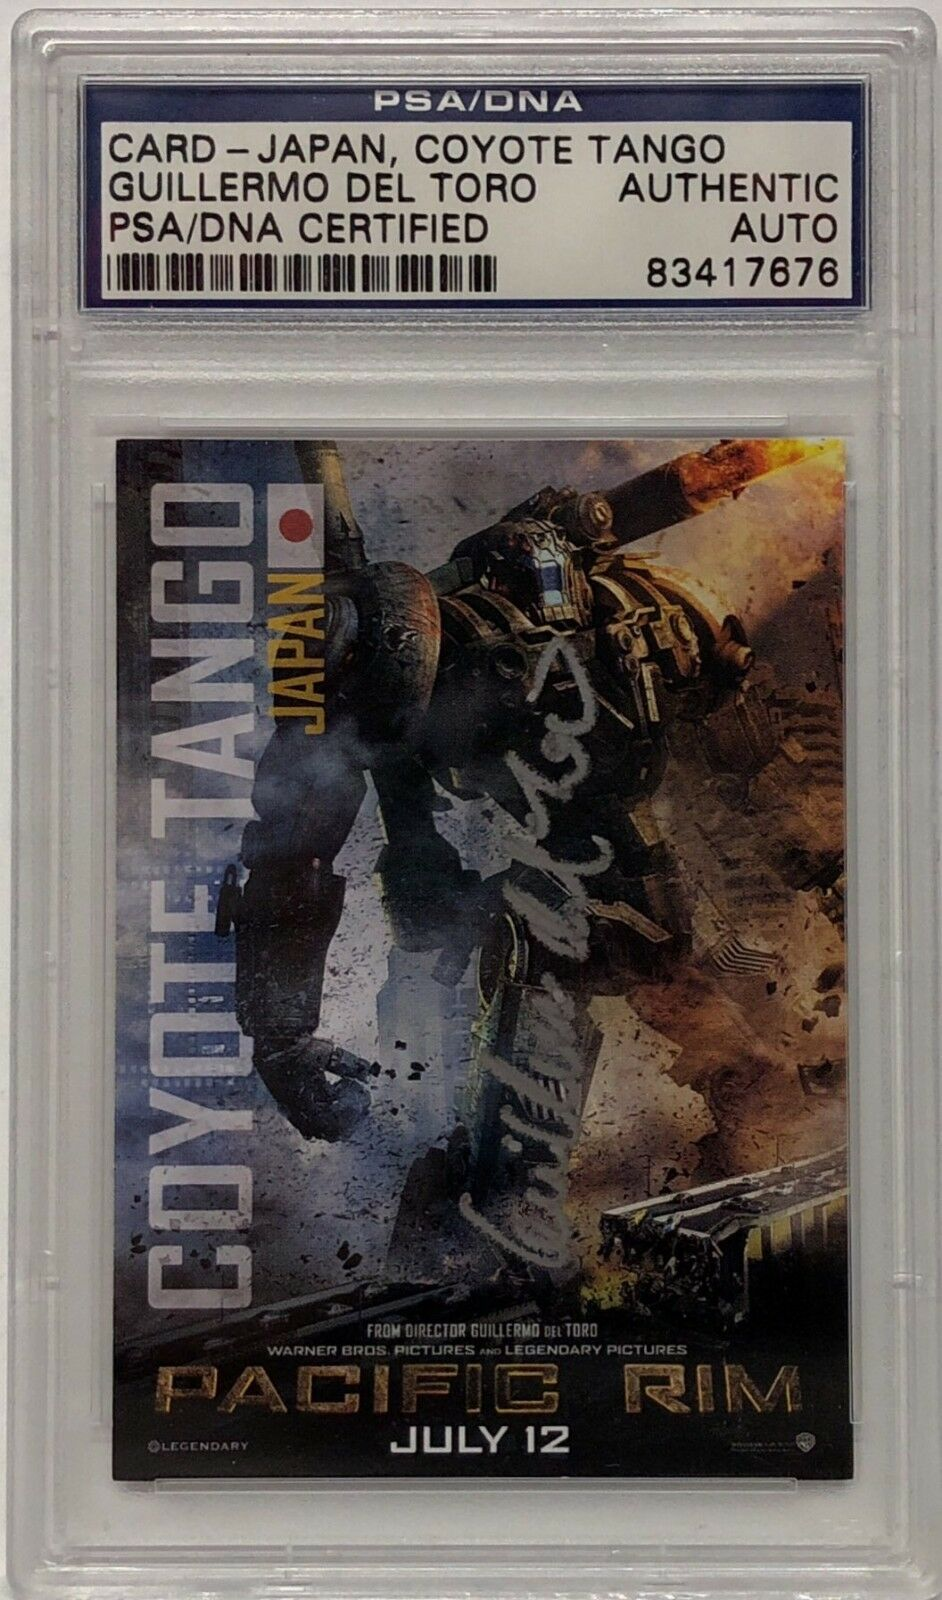 Guillermo Del Toro Signed Pacific Rim Japan, Coyote Tango Card Slabbed PSA